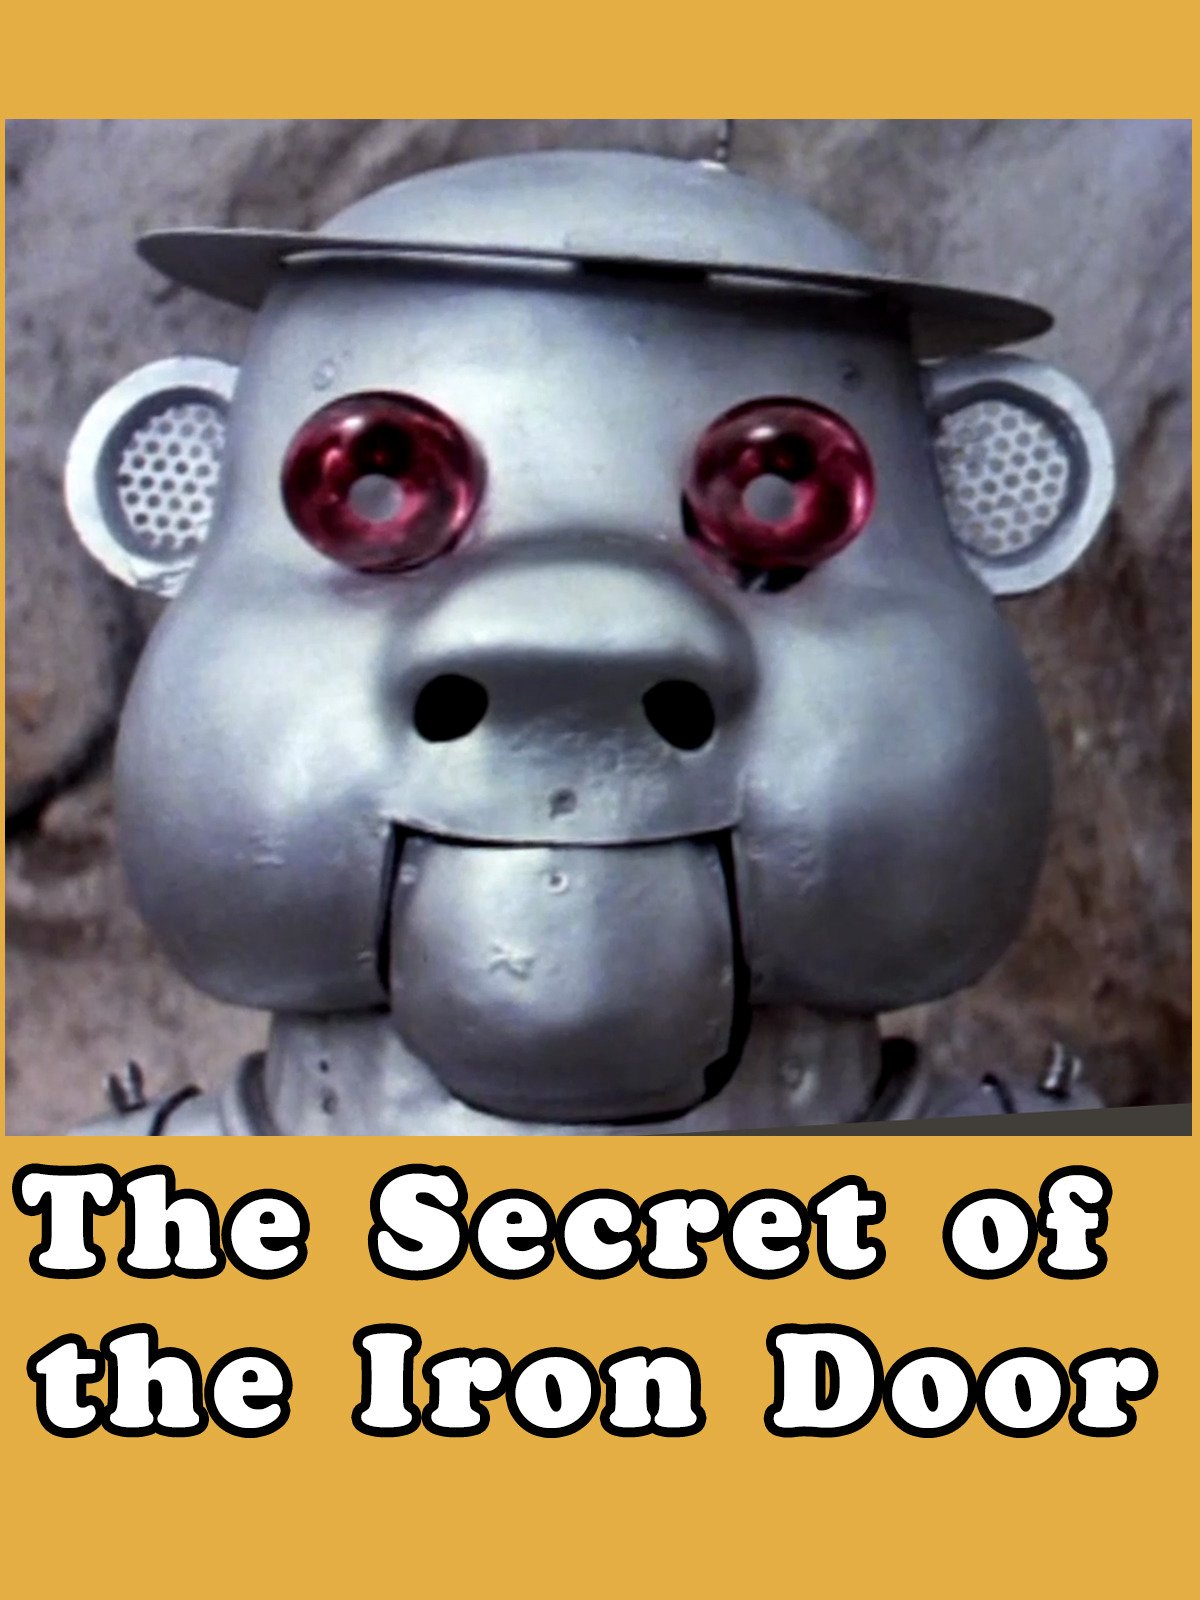 The Secret of the Iron Door